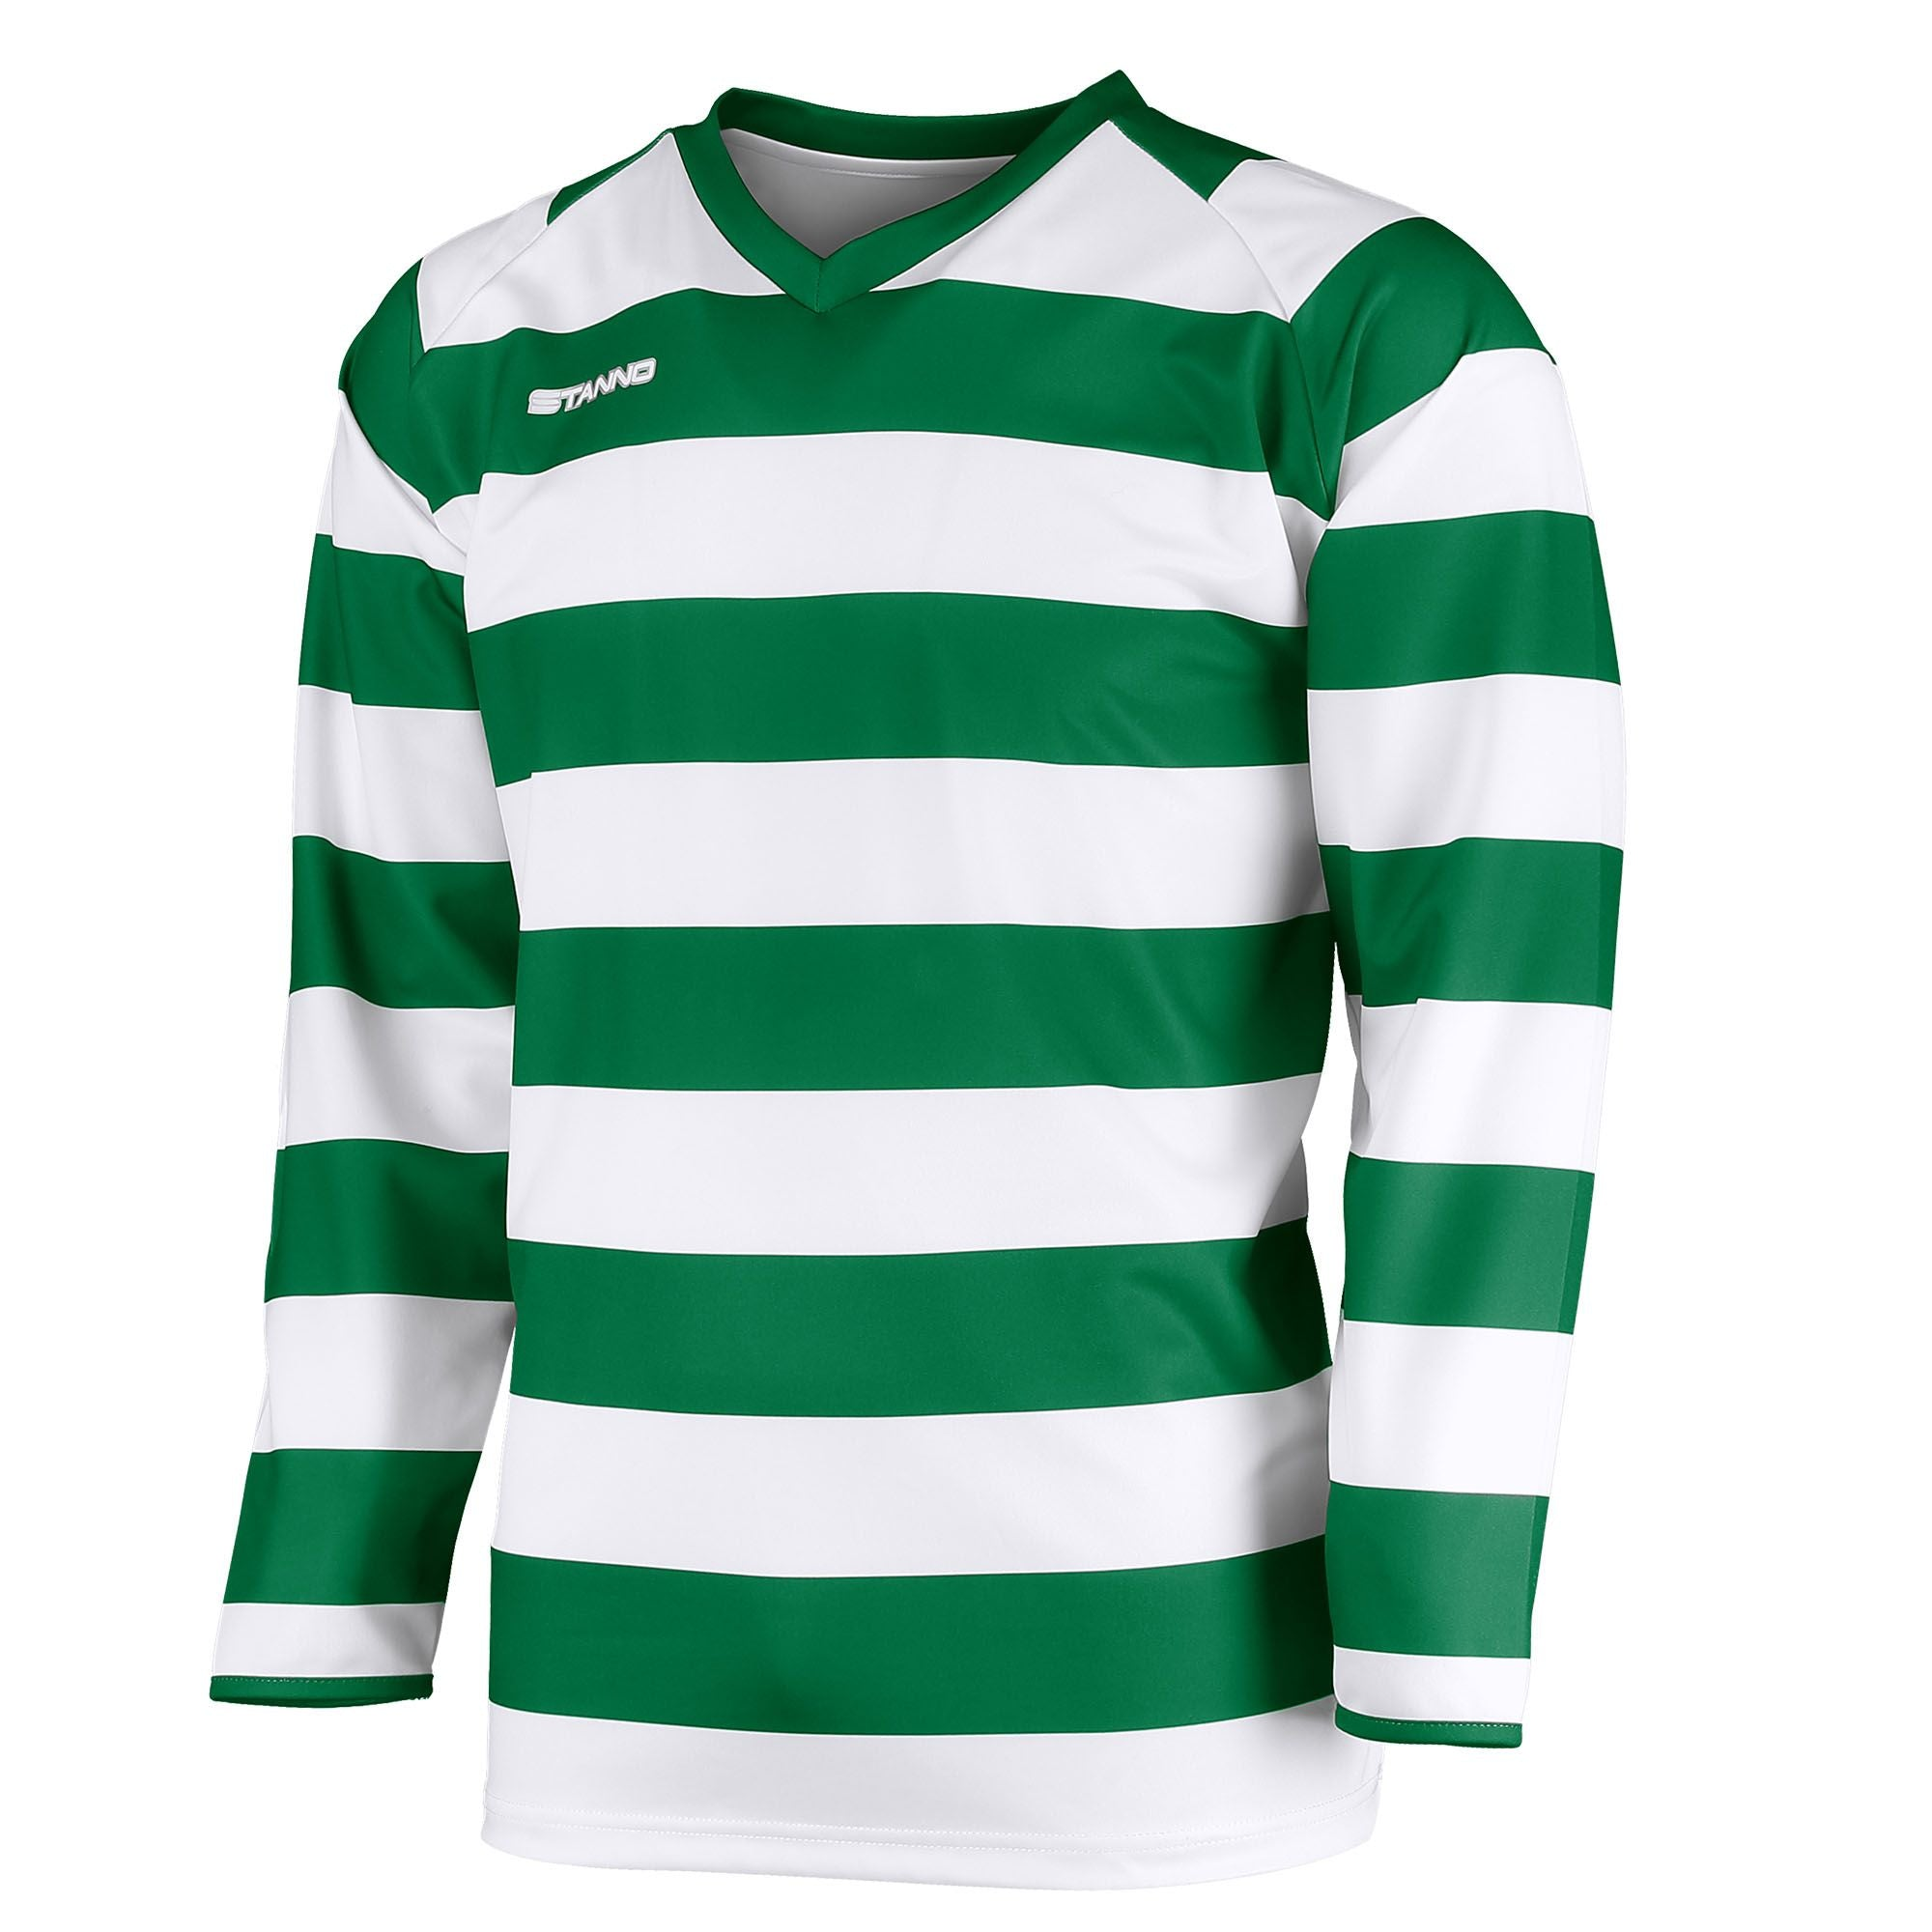 v-neck Stanno Lisbon long sleeve shirt in green and white hoops across body and arms. Stanno text logo on right side of chest.